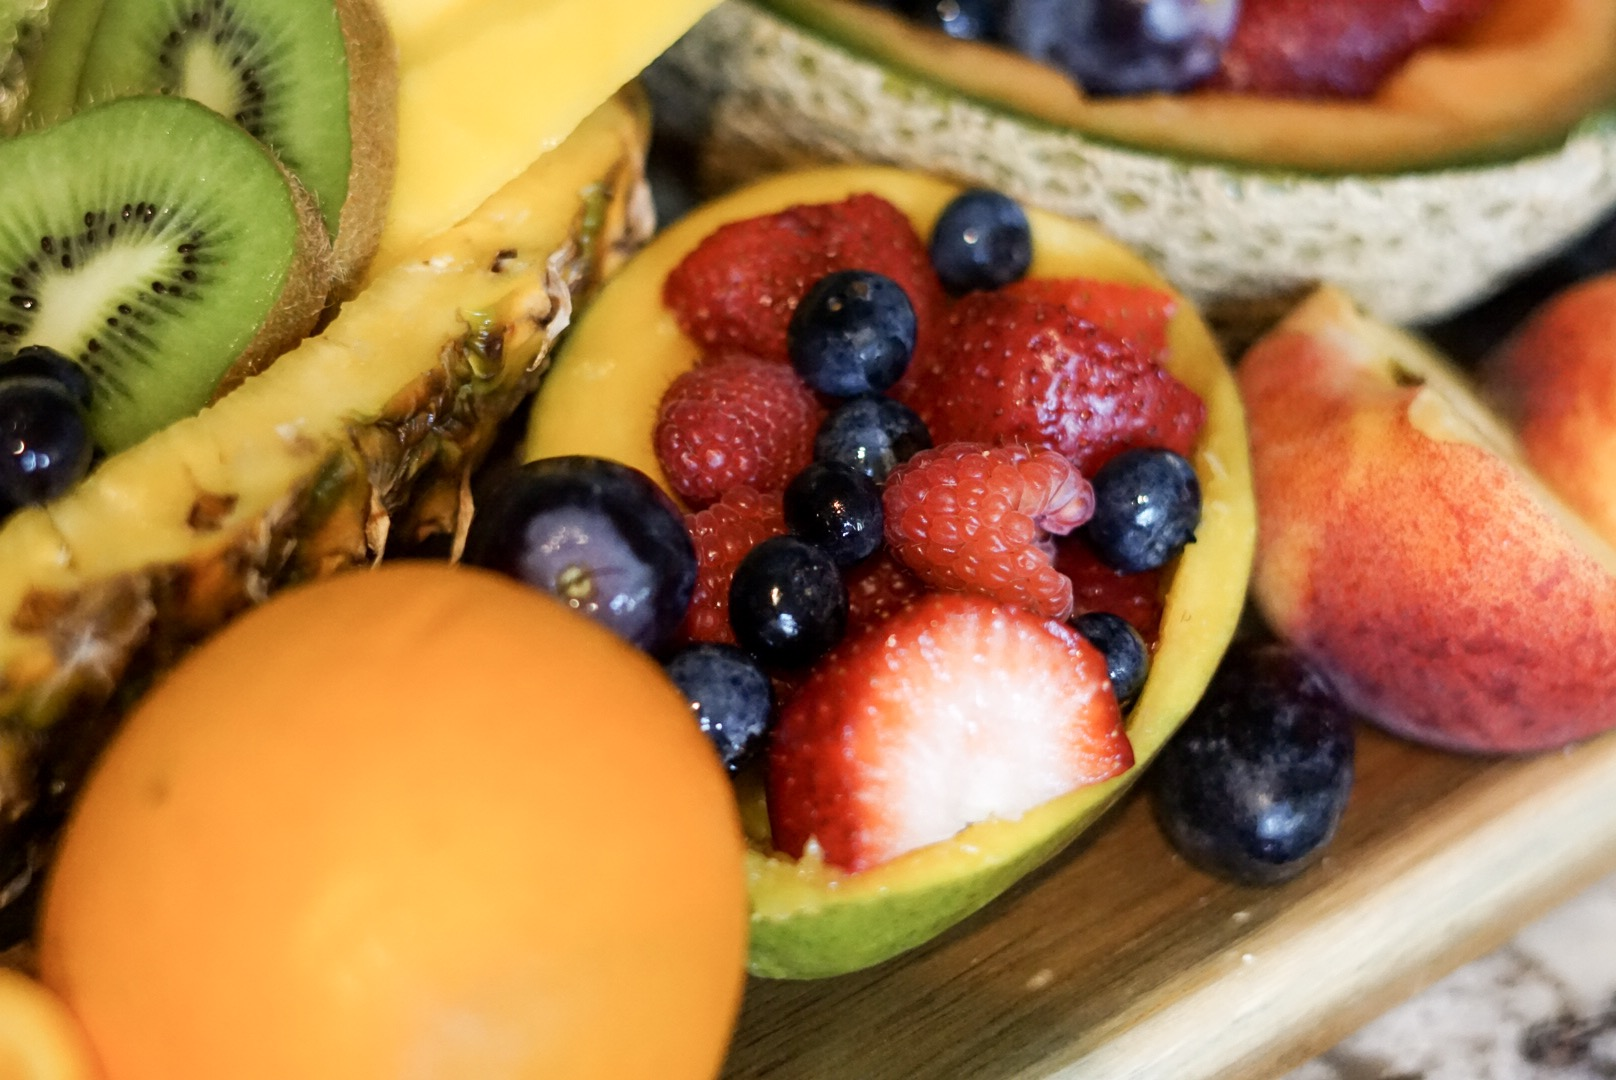 Colorful Fruit Bowls DIY - Toast from the Host